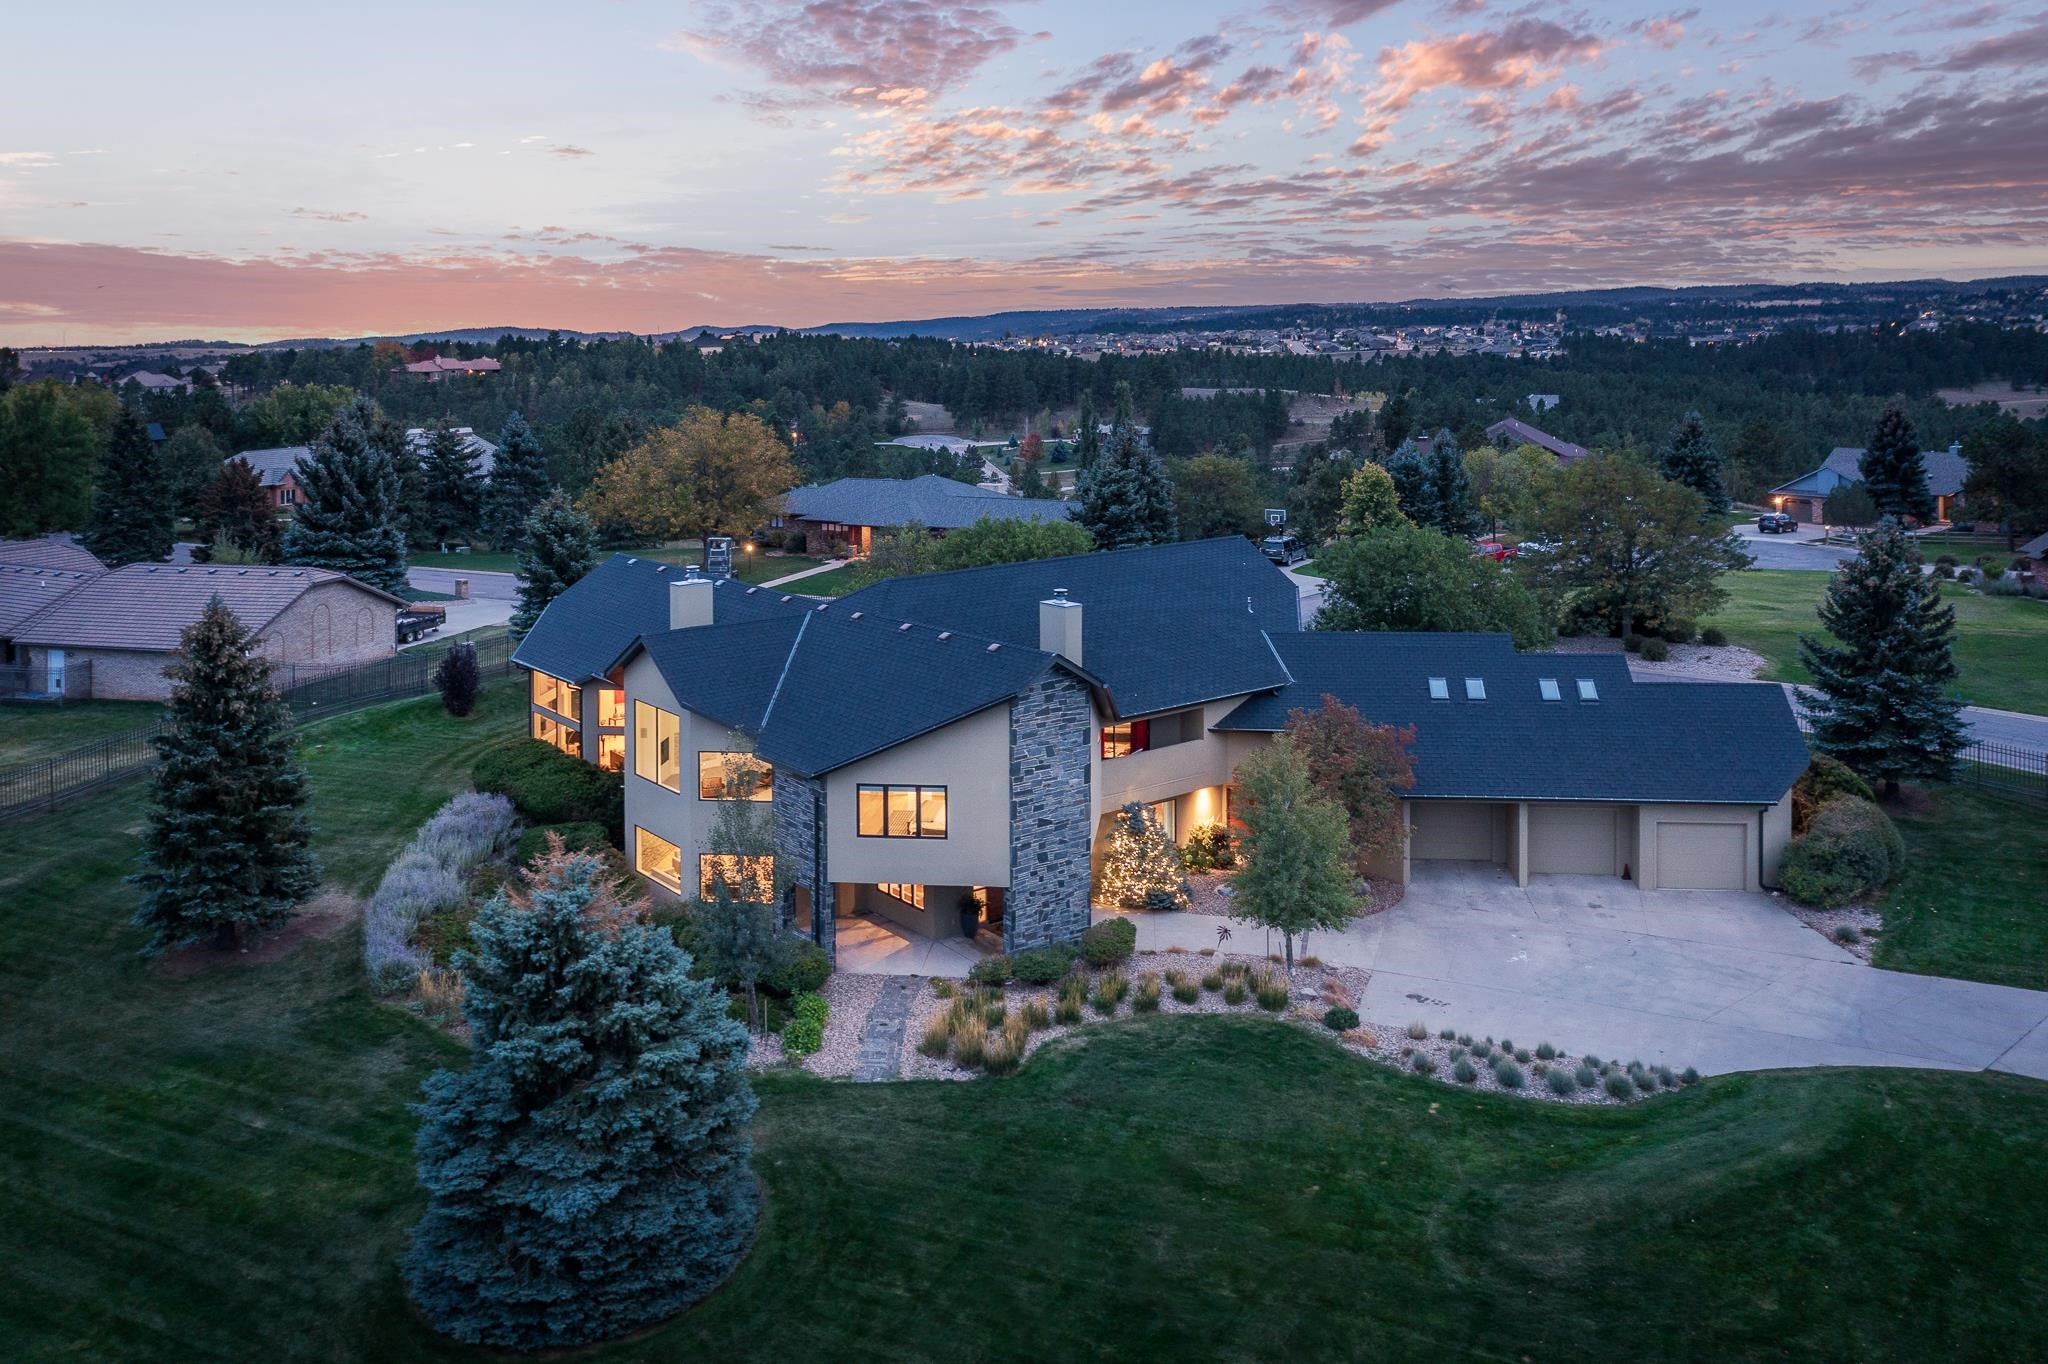 """A Contemporary Masterpiece situated on 1.41 fenced acres within the prestigious Carriage Hills neighborhood offers stunning panoramic views of the Black Hills. The home flows into a luminous, open-concept living, dining, and chef's kitchen with a gas Wolf range, double ovens, Sub Z refrigerator, wine cooler, and oversized kitchen island with quartz countertops. The main level features two grand fireplaces, family, living and dining rooms, an oversized office, a guest bedroom with en-suite bath, and a large laundry and """"drop zone"""" with beautiful built-in cabinetry. The upper level features three large bedrooms, all with private ensuites. The primary bedroom features oversized windows and attached sitting room - perfect for enjoying your morning coffee while gazing at the hills. The spa-inspired bathroom boasts an oversized steam shower, tub, and custom vanity. The additional bedrooms are generously sized and boast covered patios, bringing your guests a resort-like feel."""